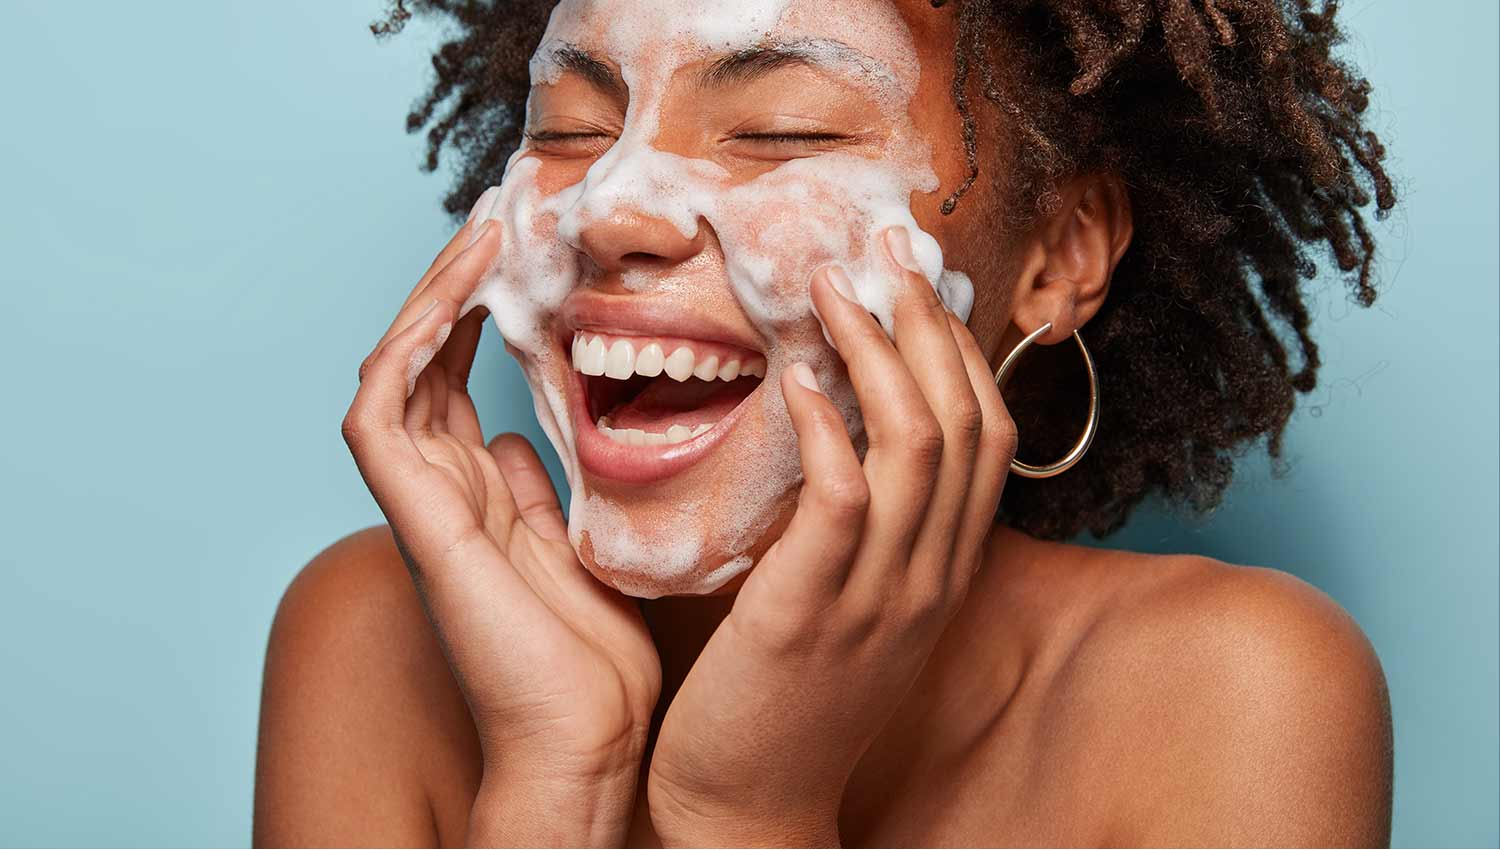 Female model laughing with face covred in a lathered skincare product